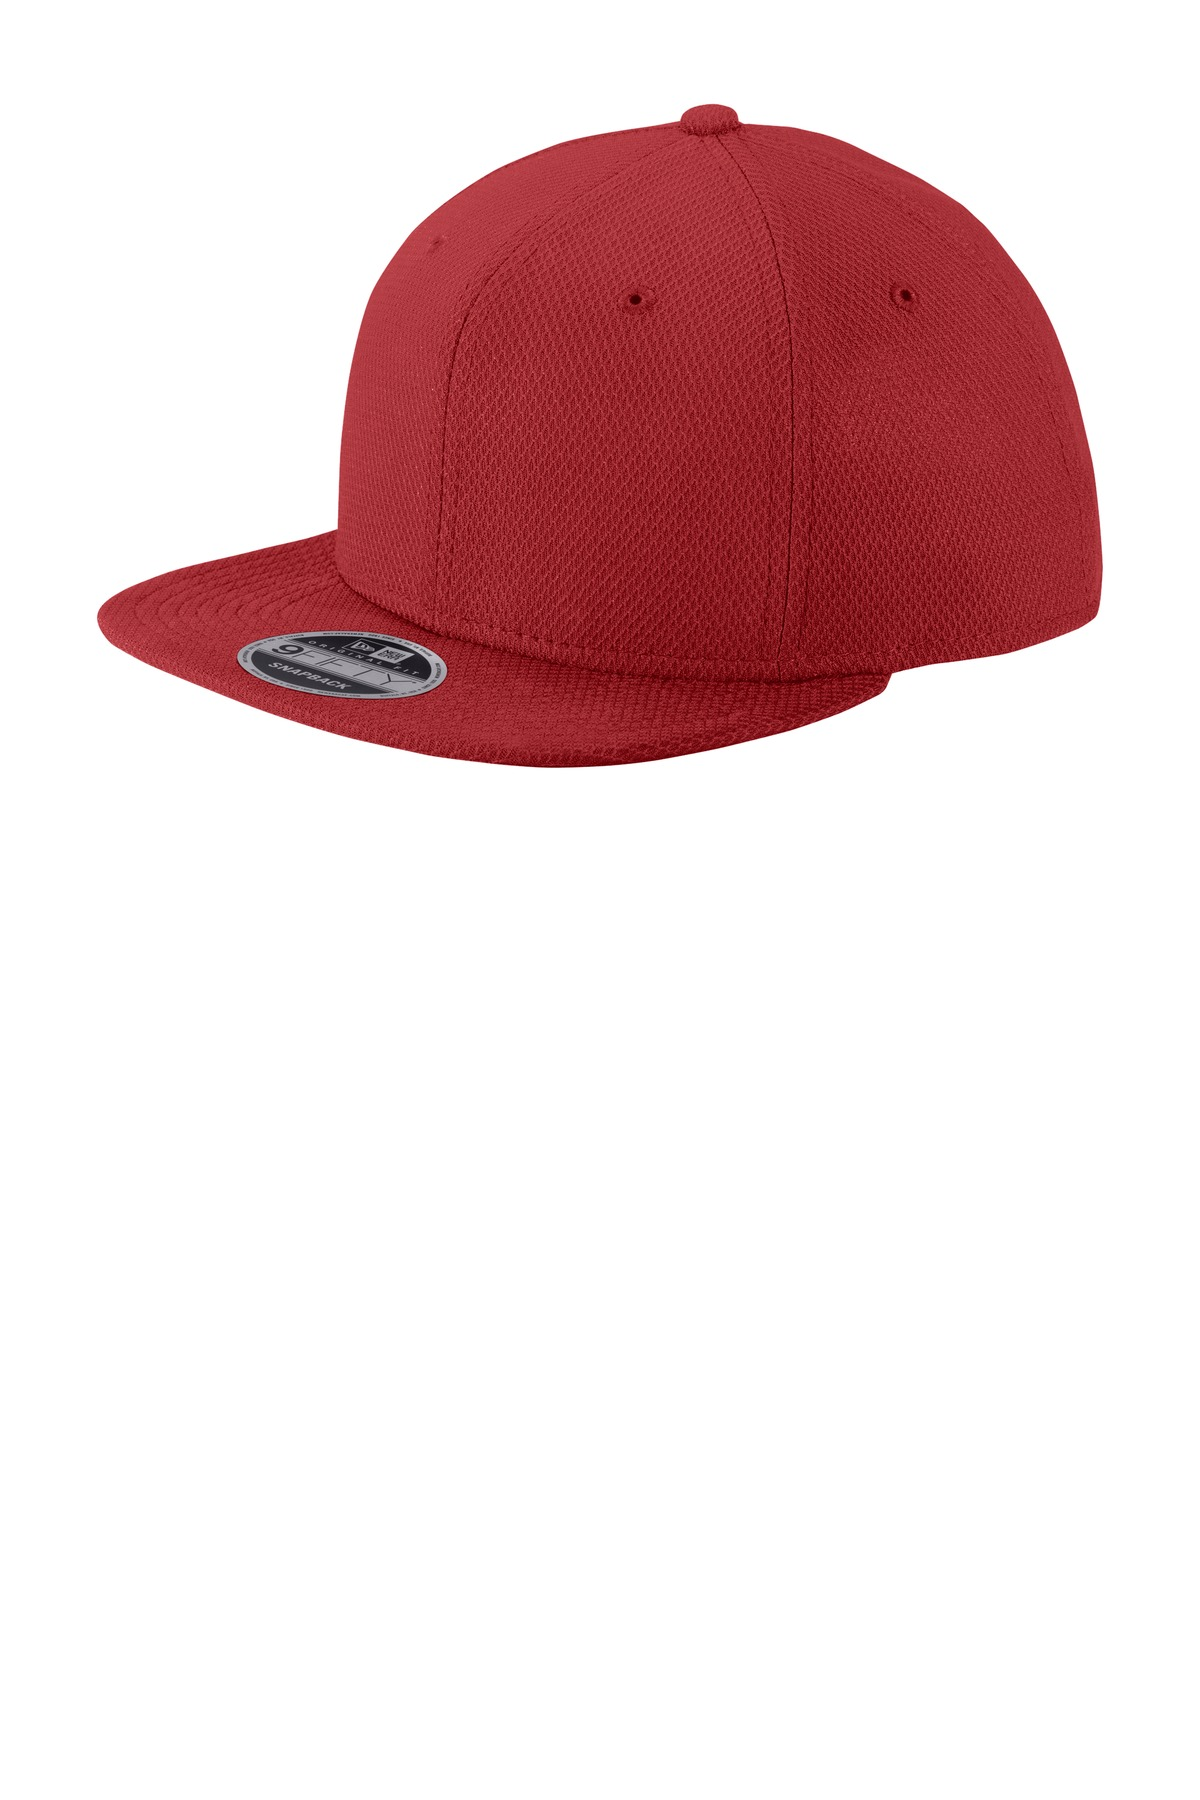 New Era  ®  Original Fit Diamond Era Flat Bill Snapback Cap. NE404 - Crimson